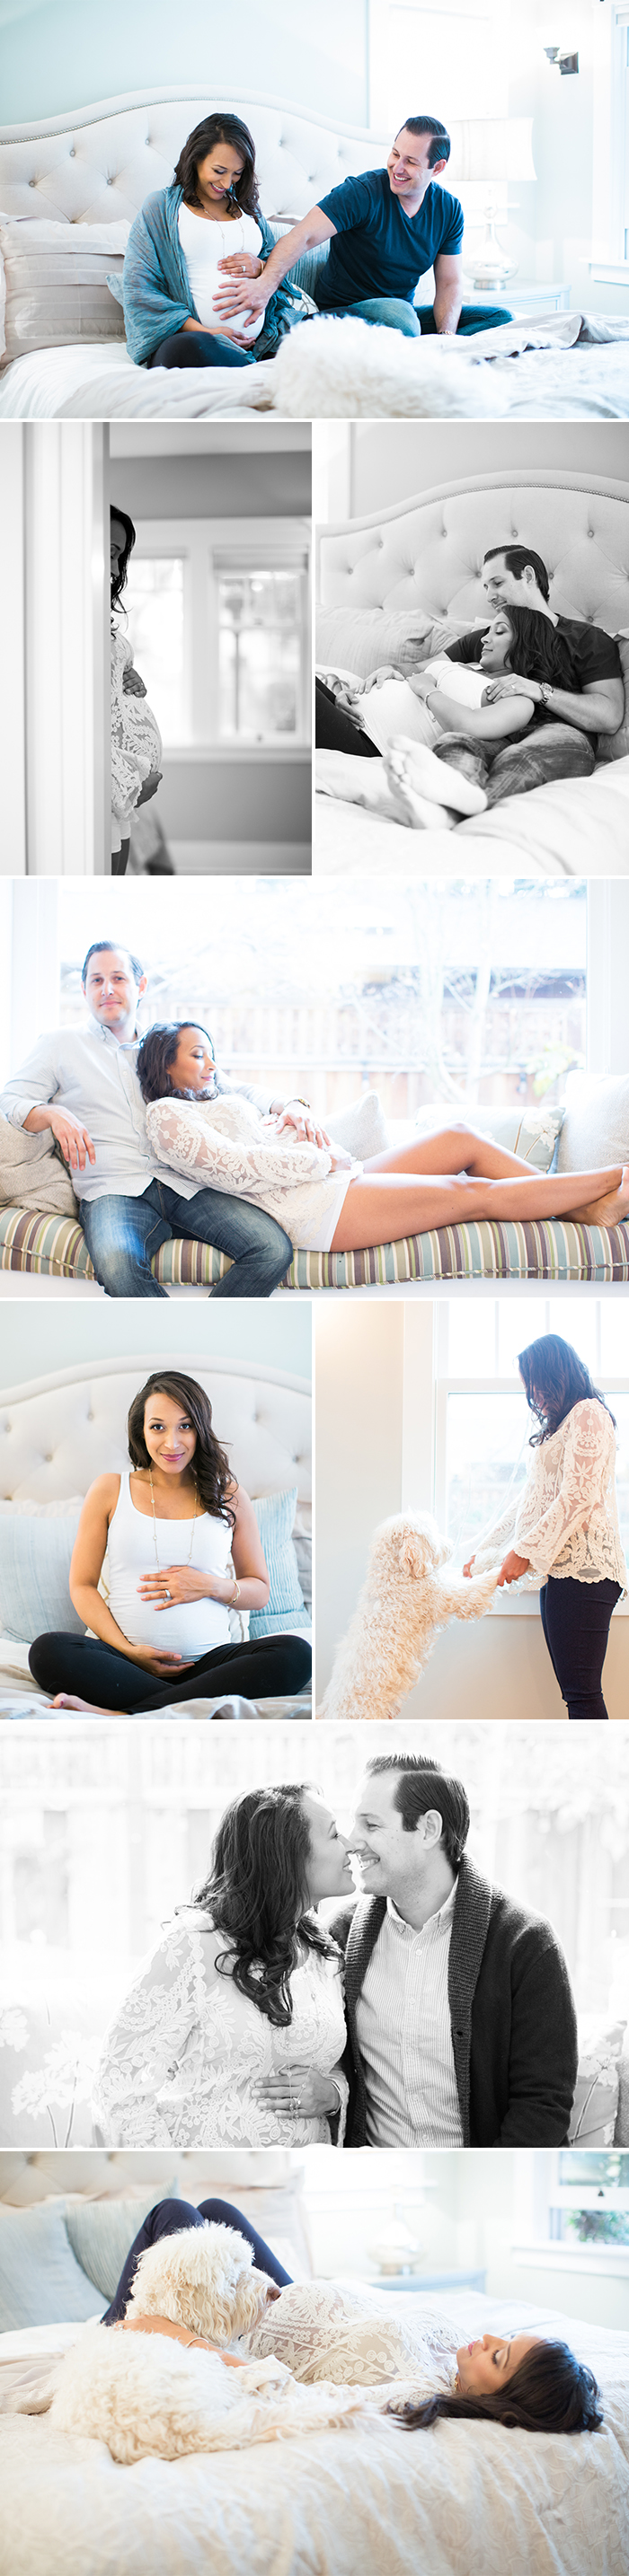 Love our at home maternity photos! | Maternity Shoot Ideas ...